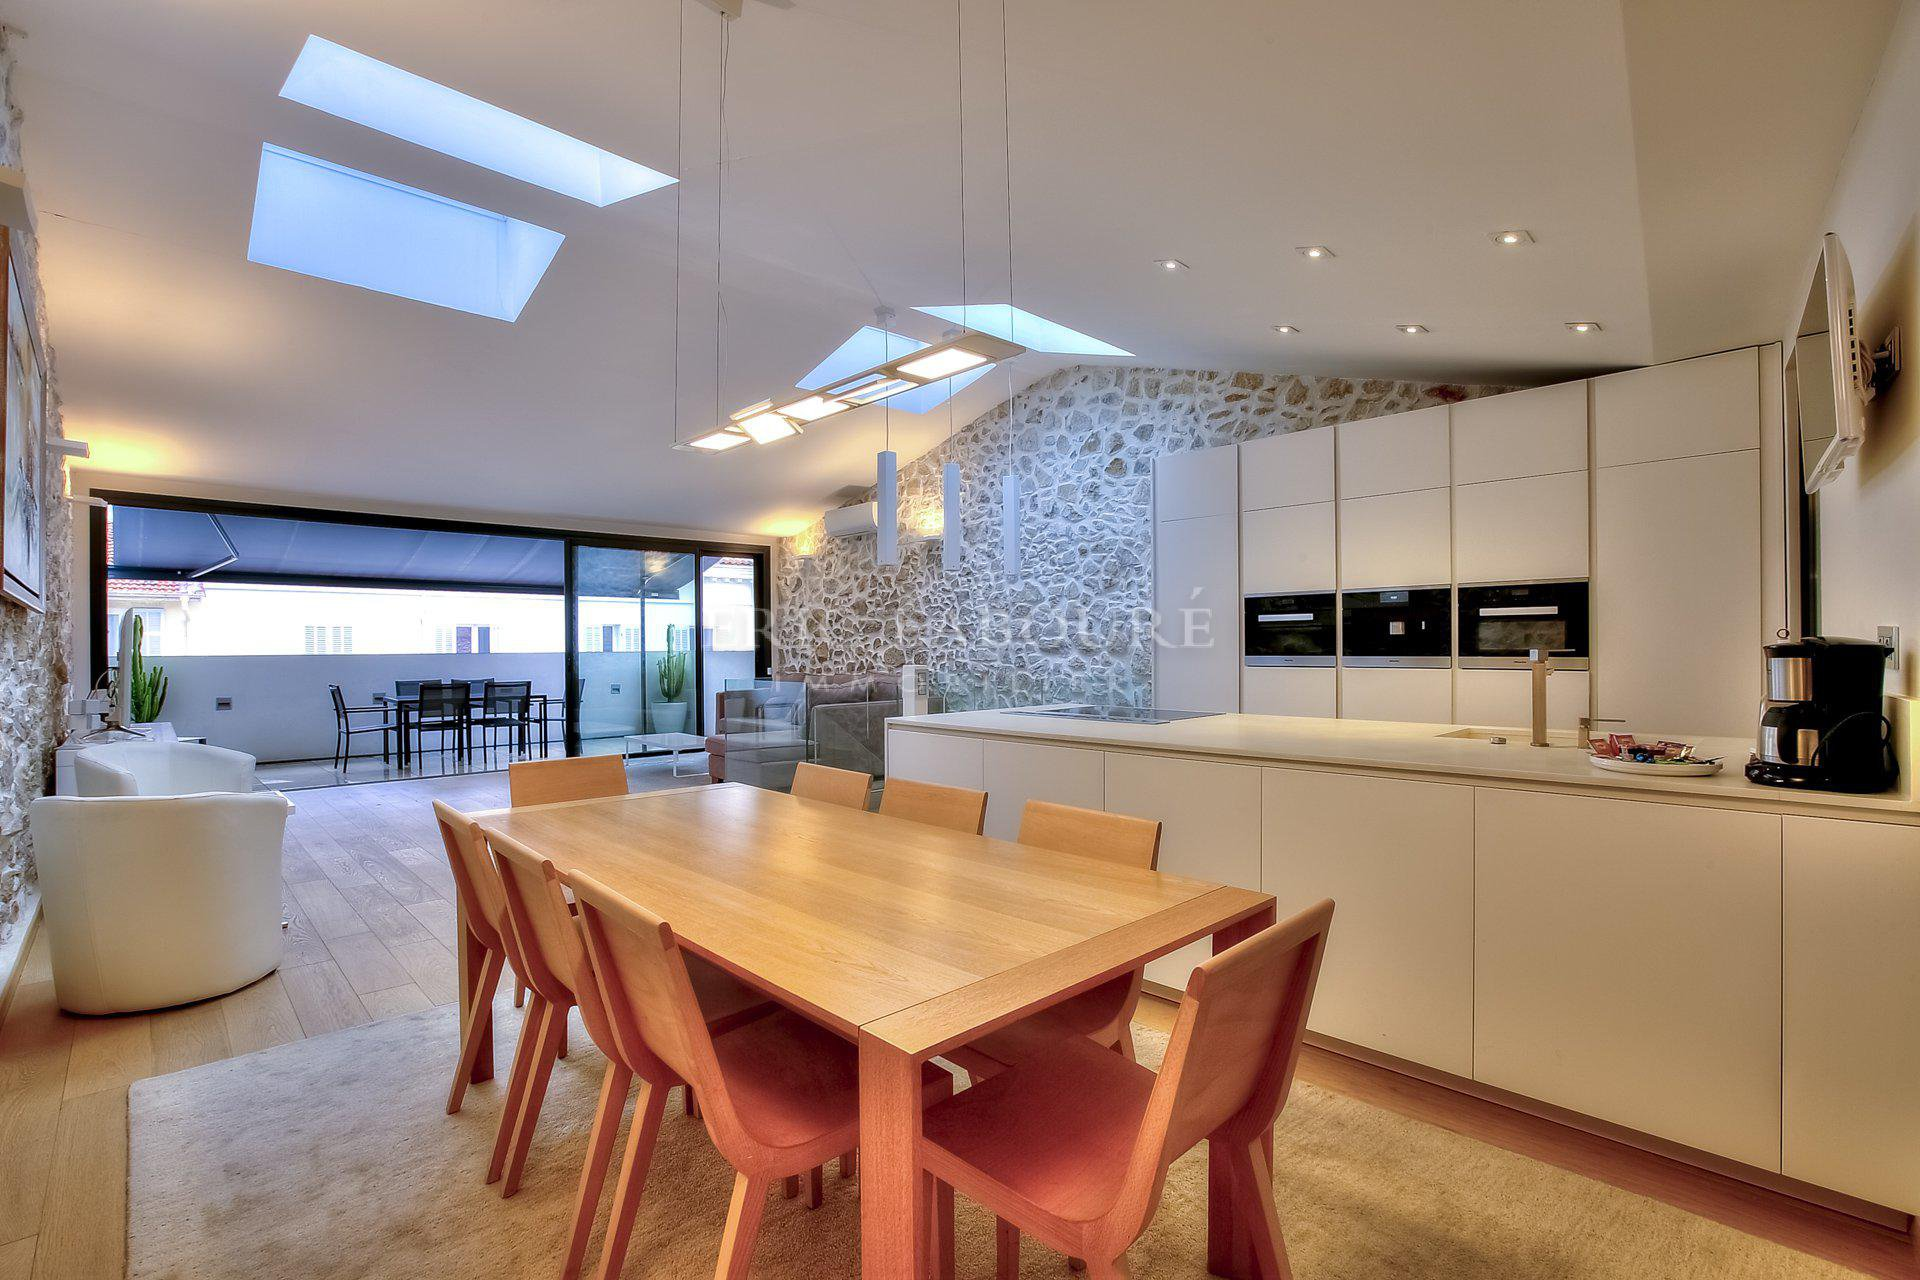 Skylight, natural light, high ceiling